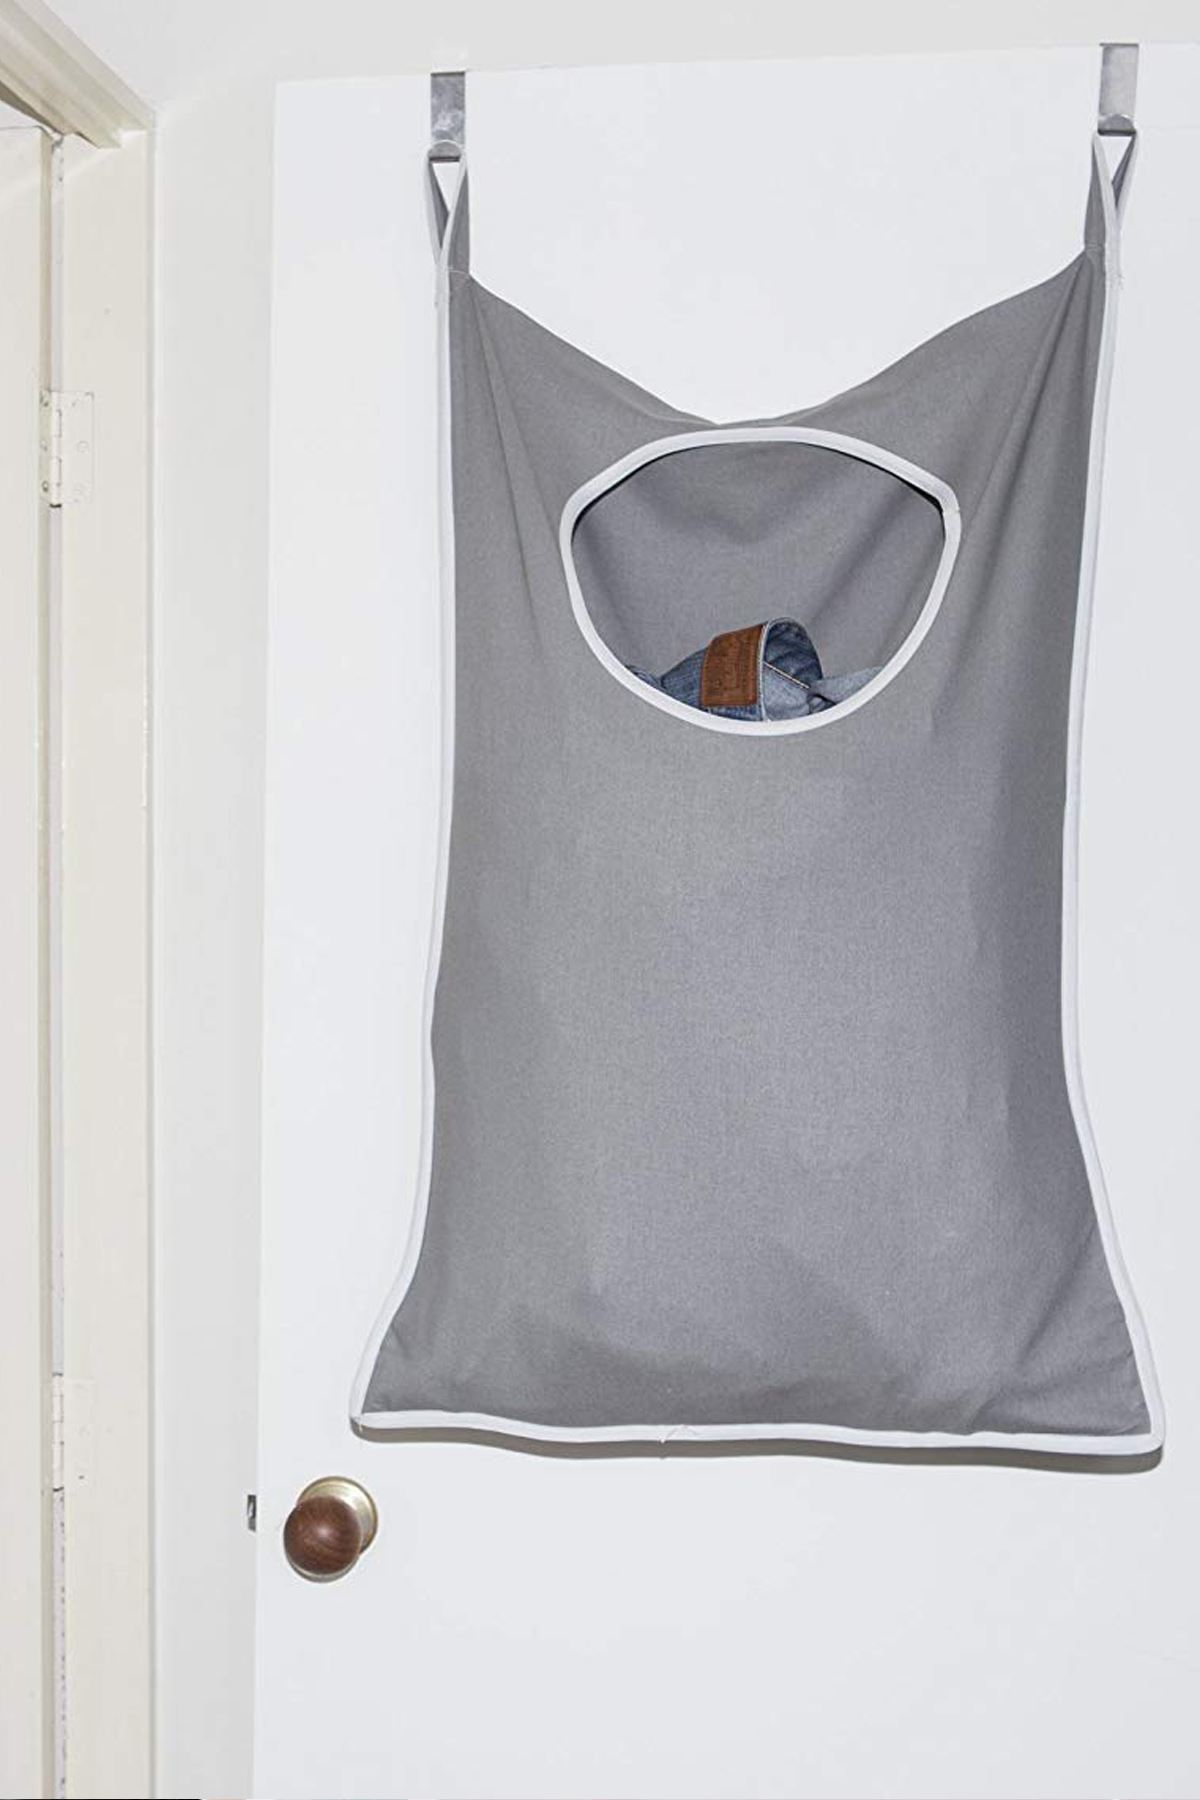 Gray Laundry Toy Hanger Kids Room Bathroom Dirty Clothes Hooked Behind Door Wall Model Practical Household Items Storage Model